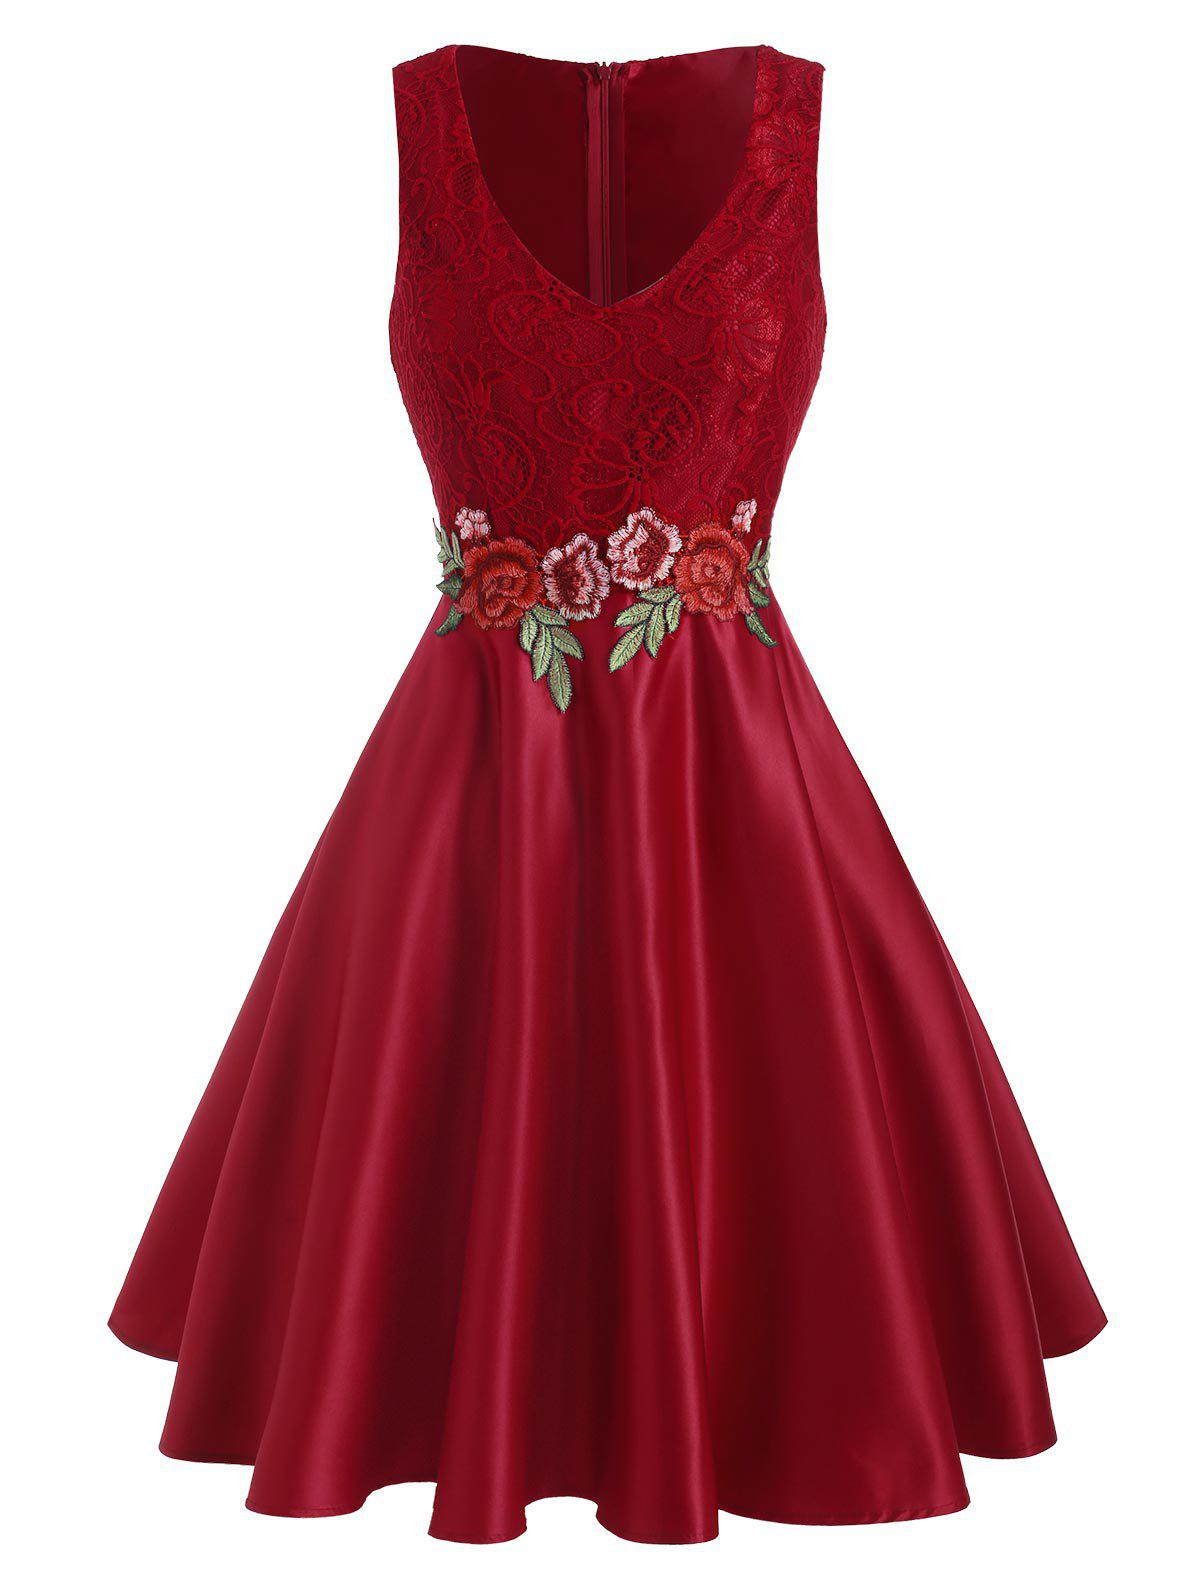 Discount Floral Embroidered Applique Lace Panel Party Dress